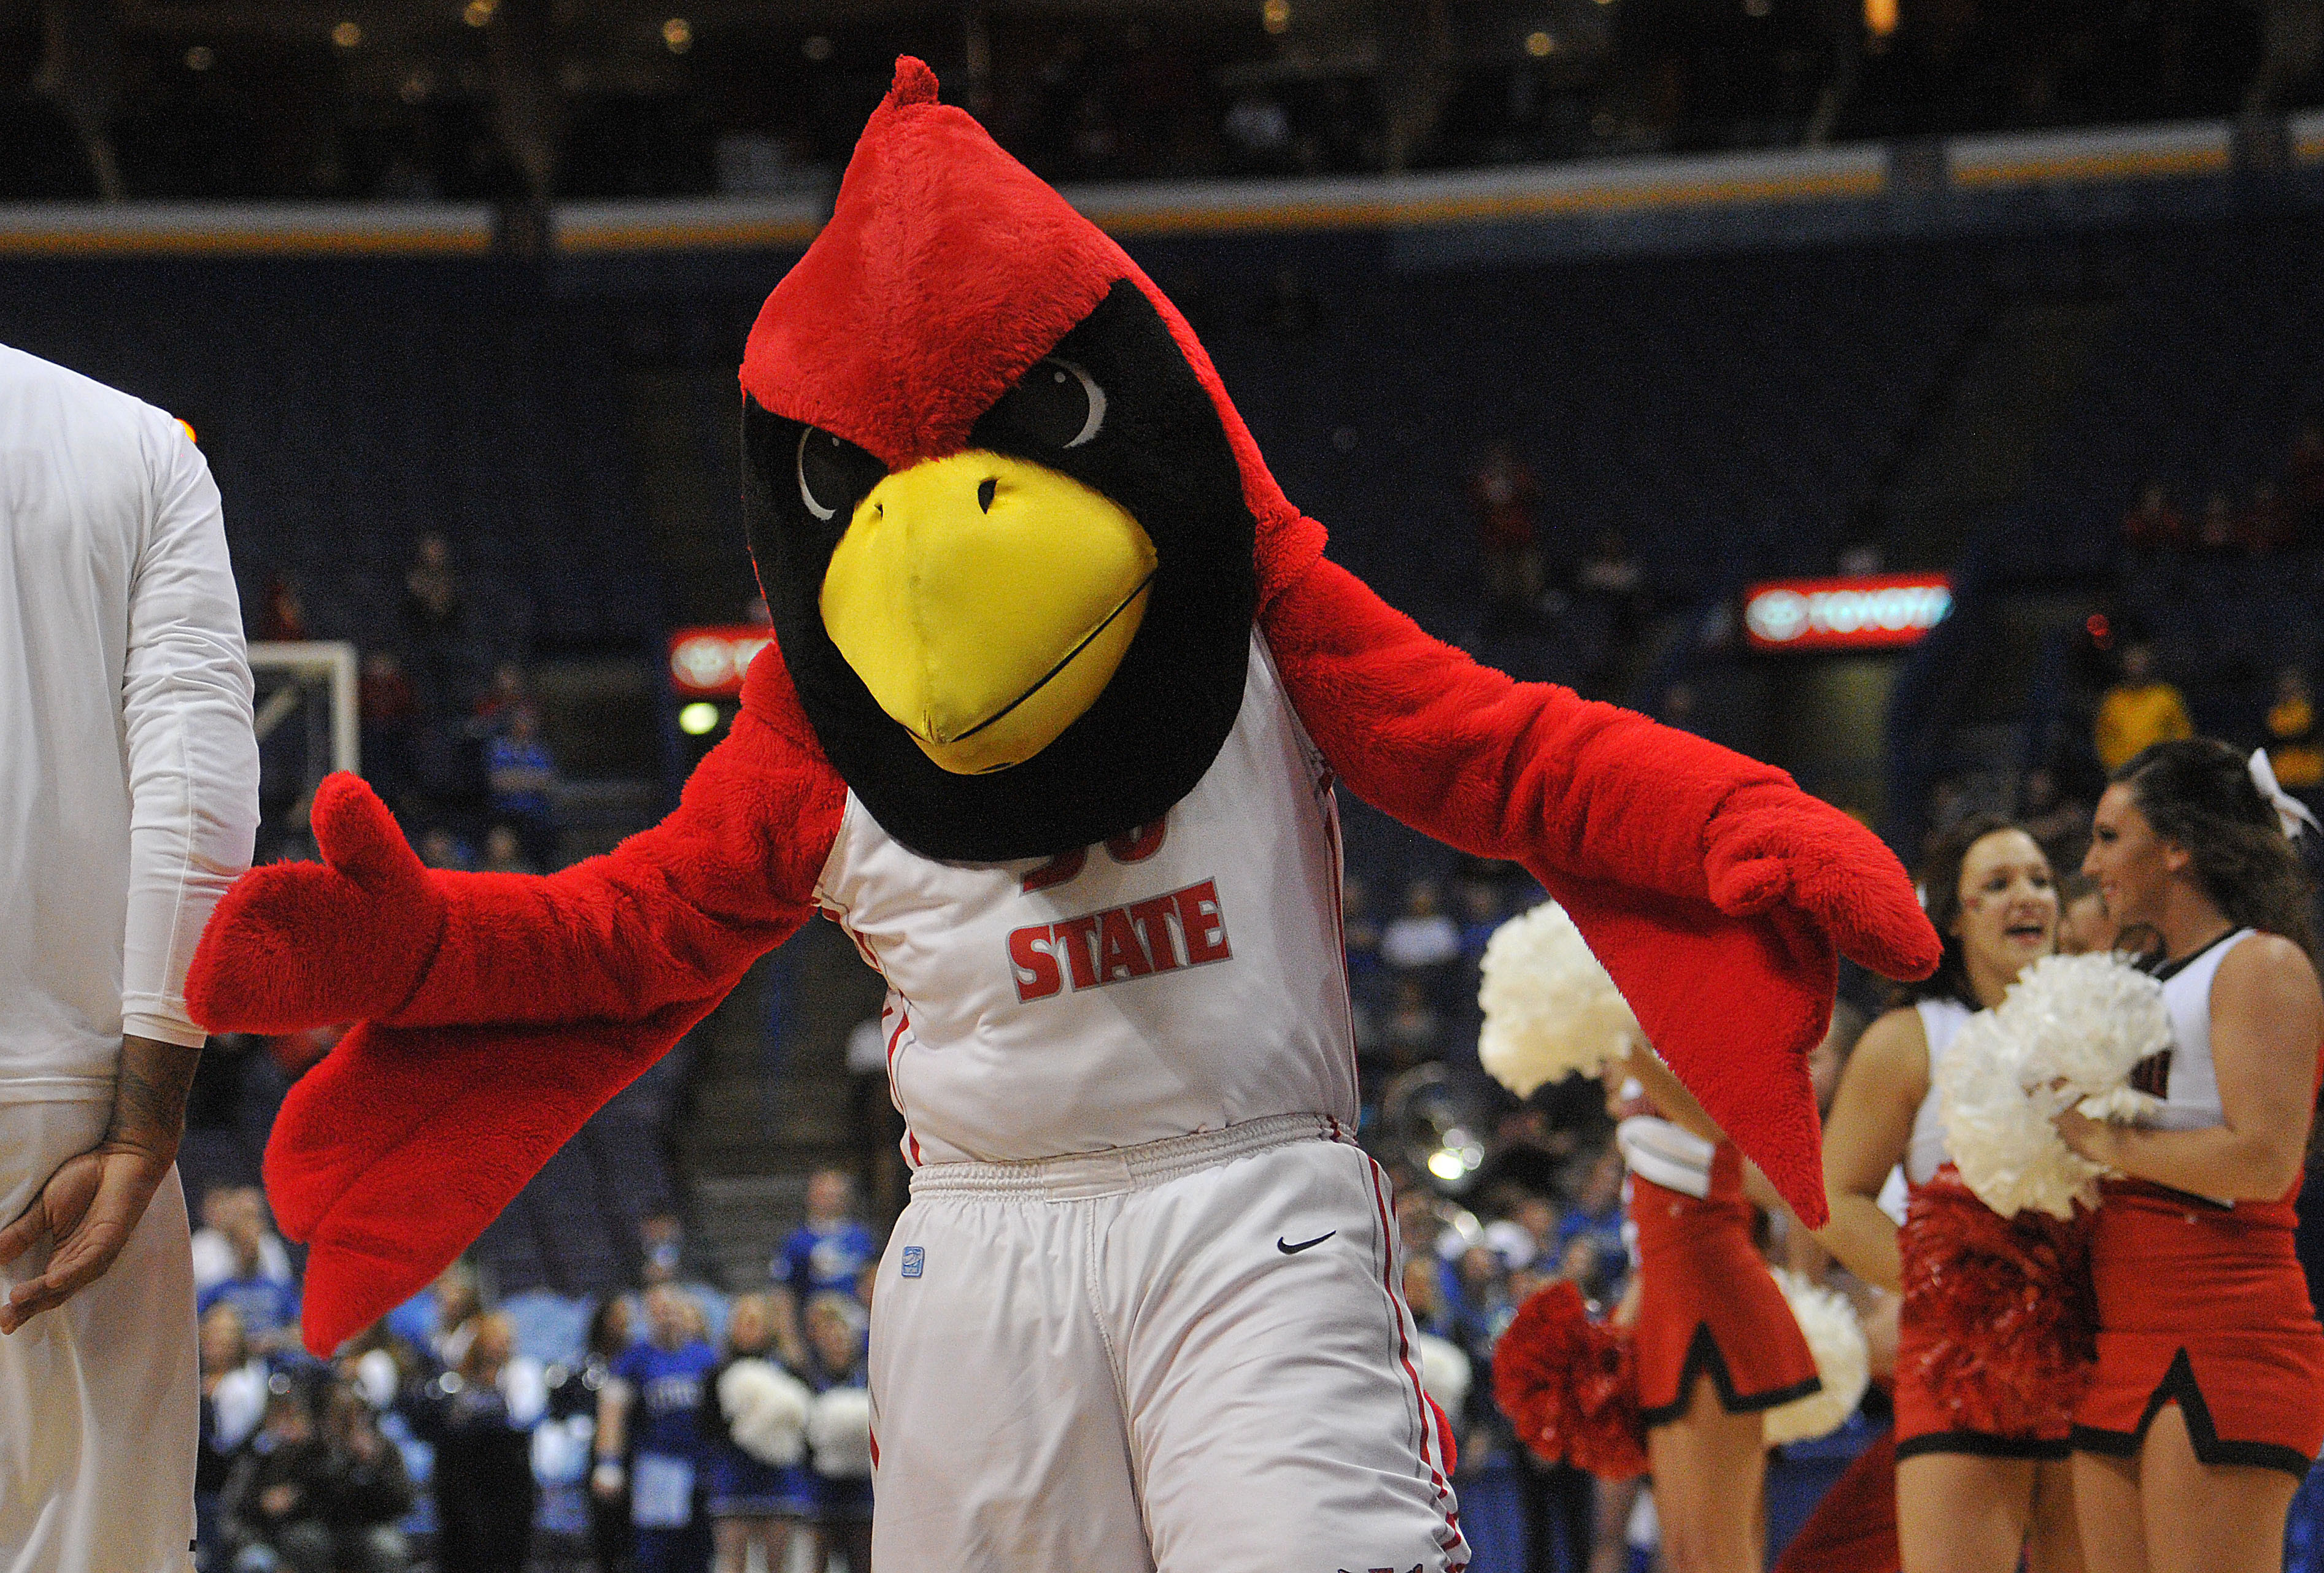 NCAA BASKETBALL: MAR 04 Missouri Valley Conference Championship - Indiana State v Illinois State